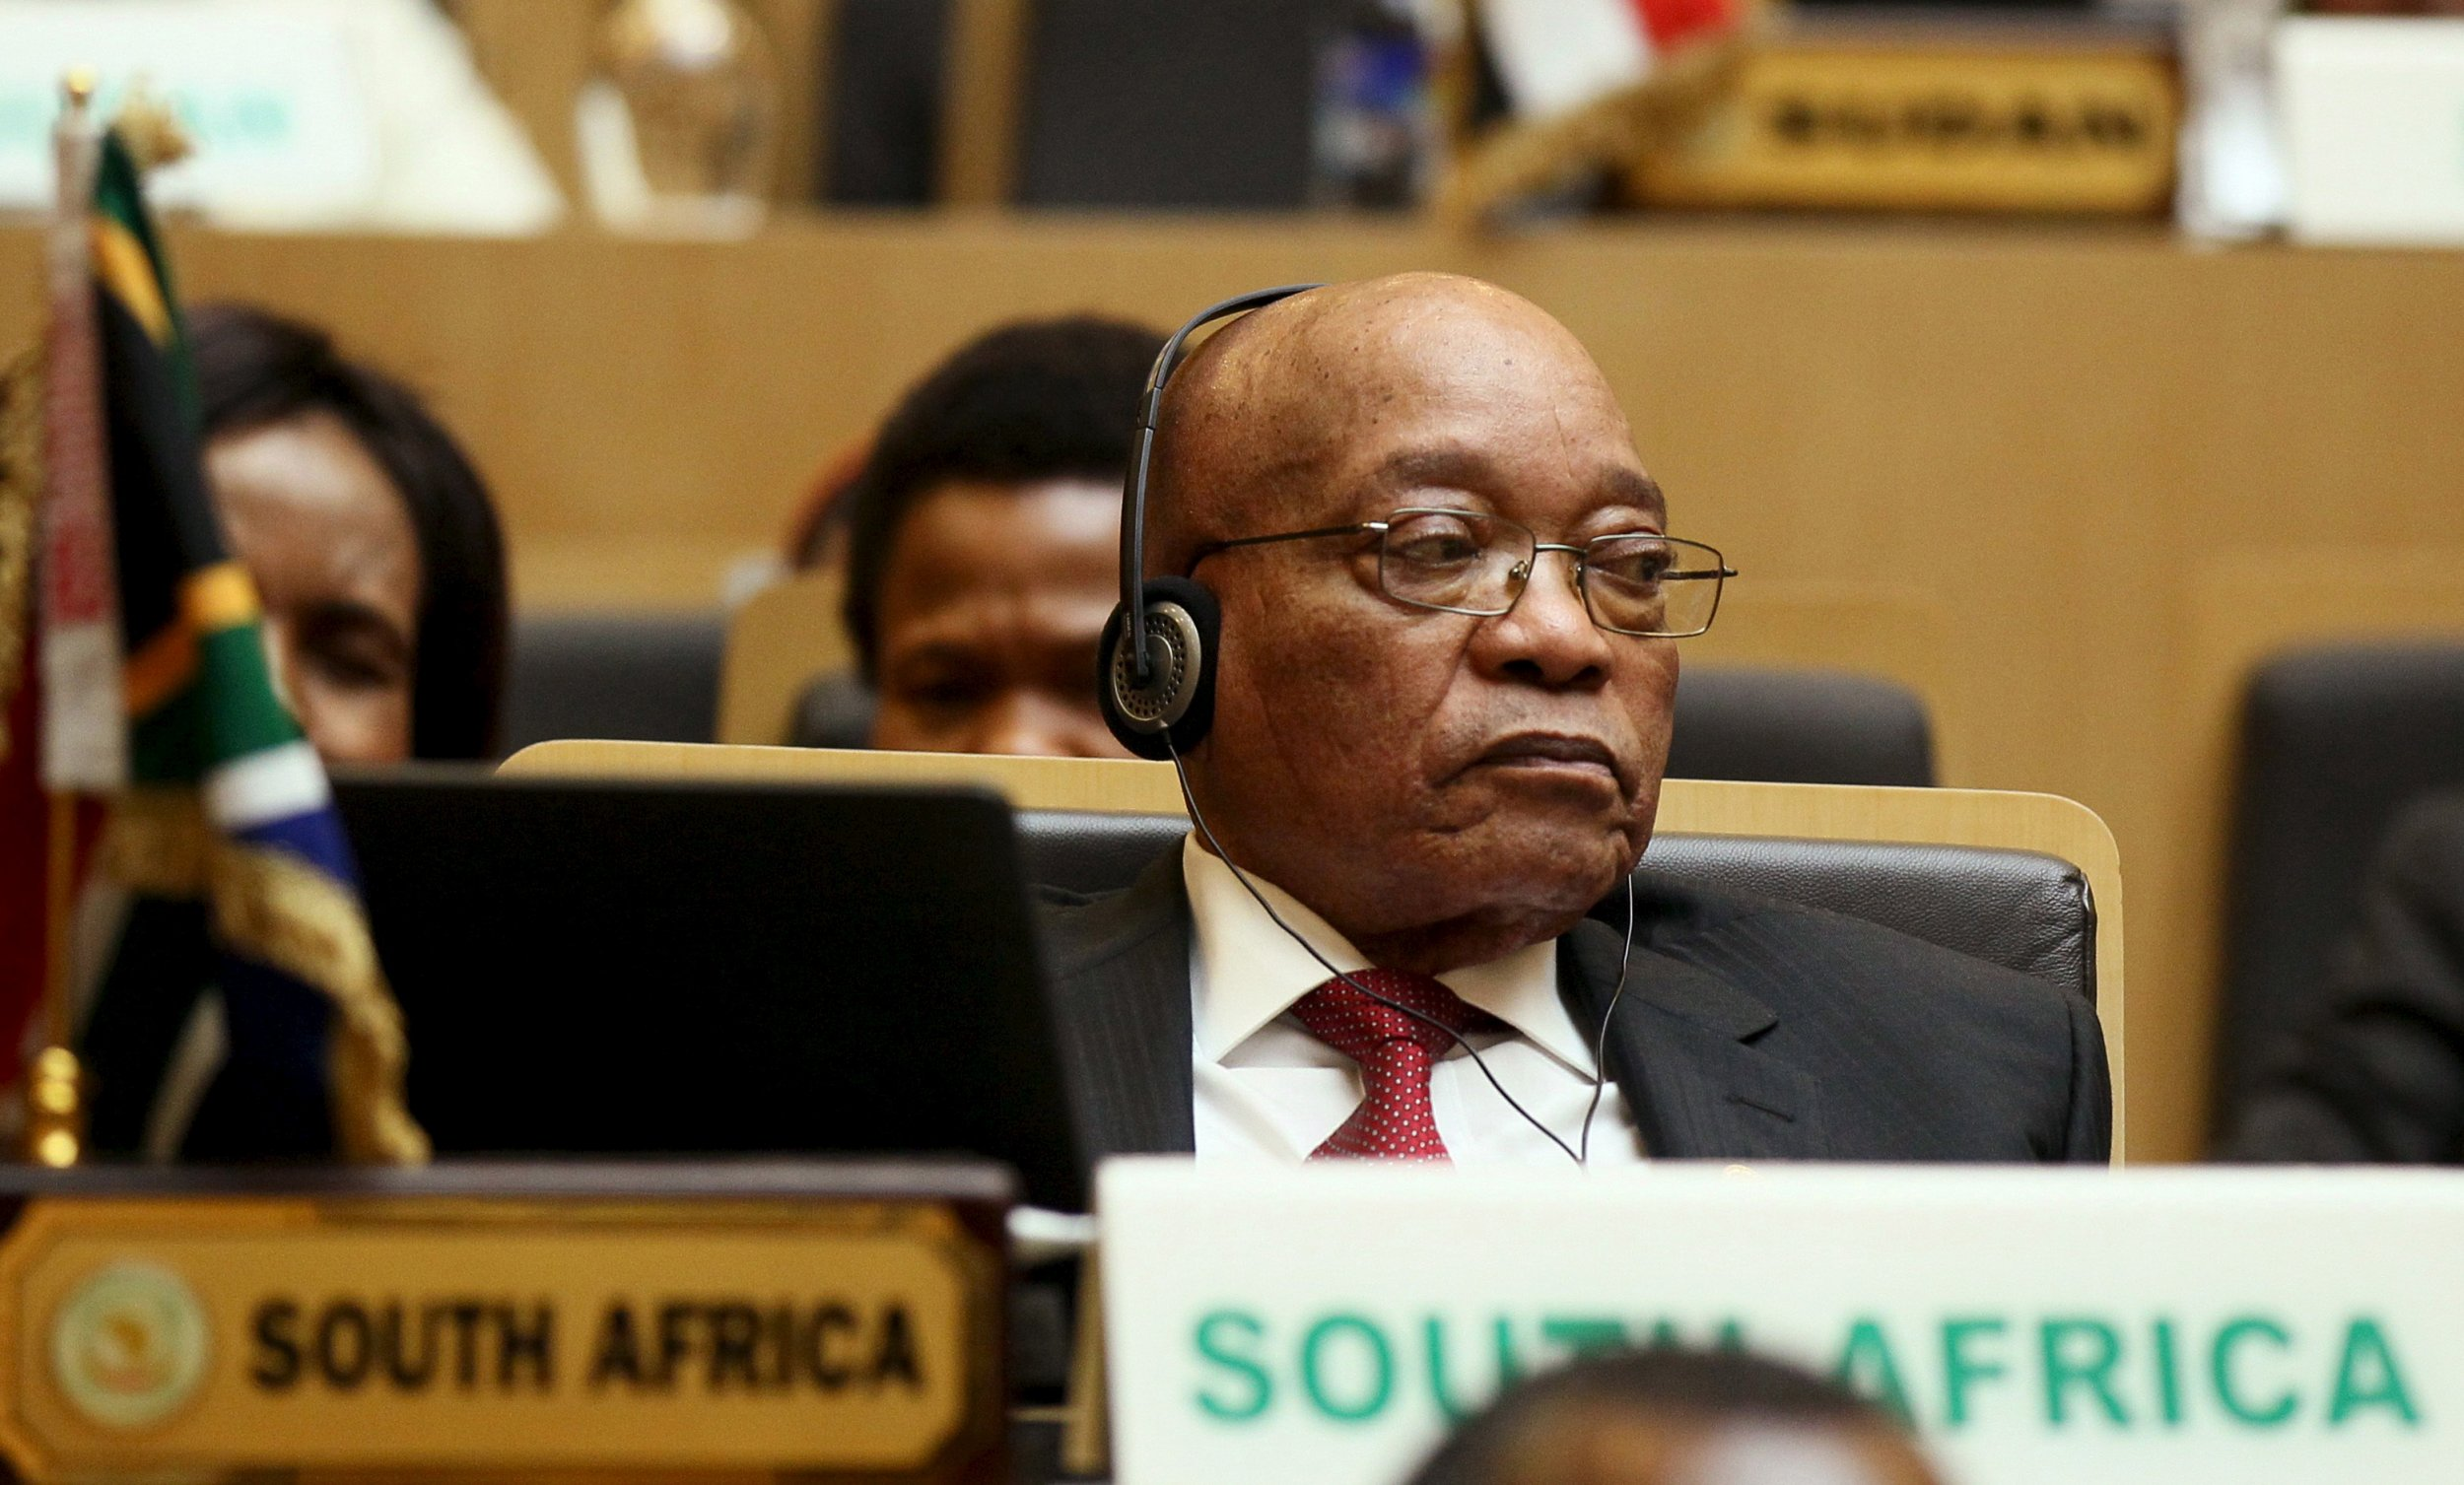 Jacob Zuma is facing calls to pay back the Nkandla money.